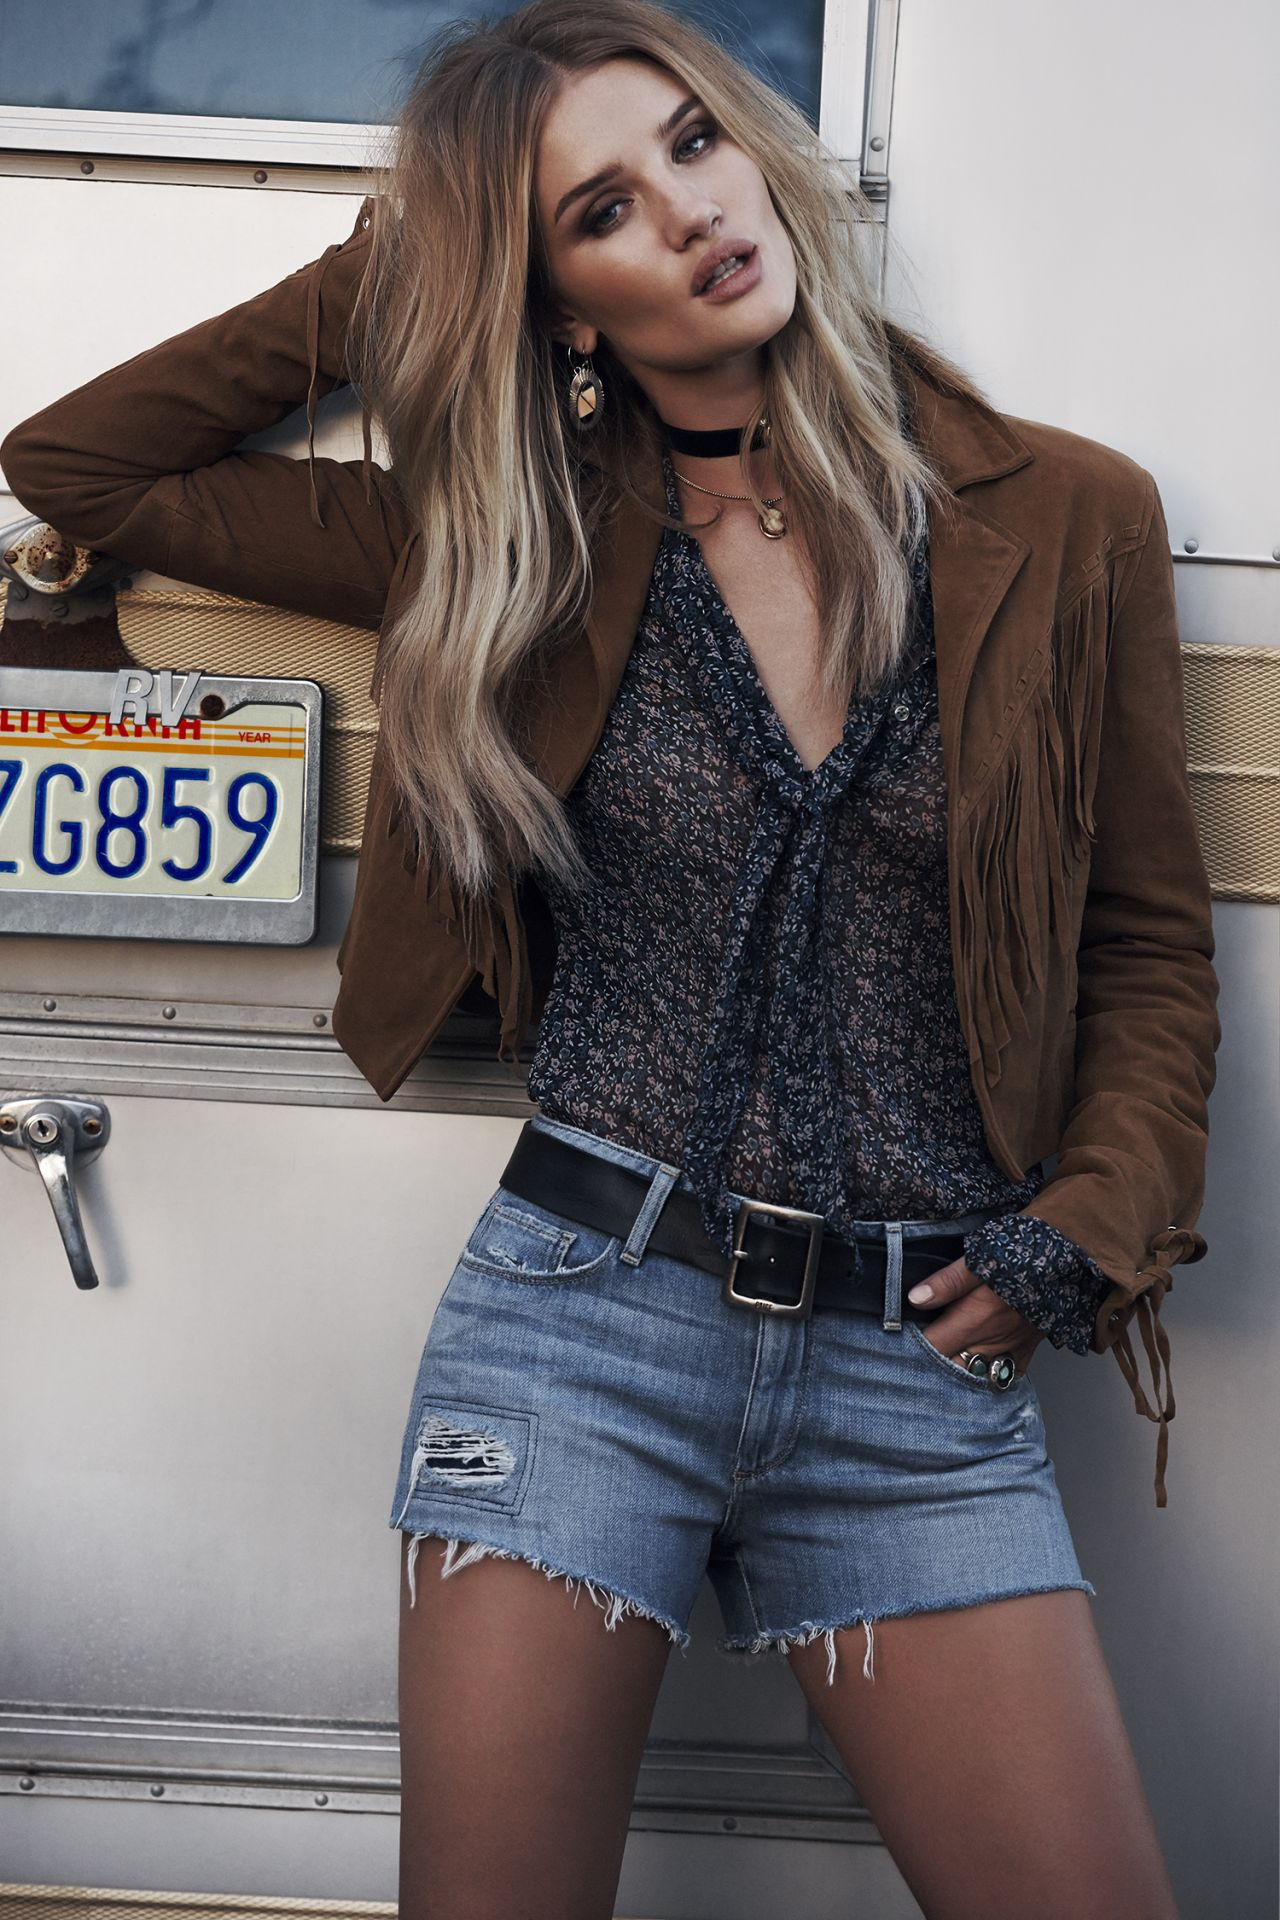 Rosie Huntington-Whiteley – Paige Denim Spring Summer 2016 Photos